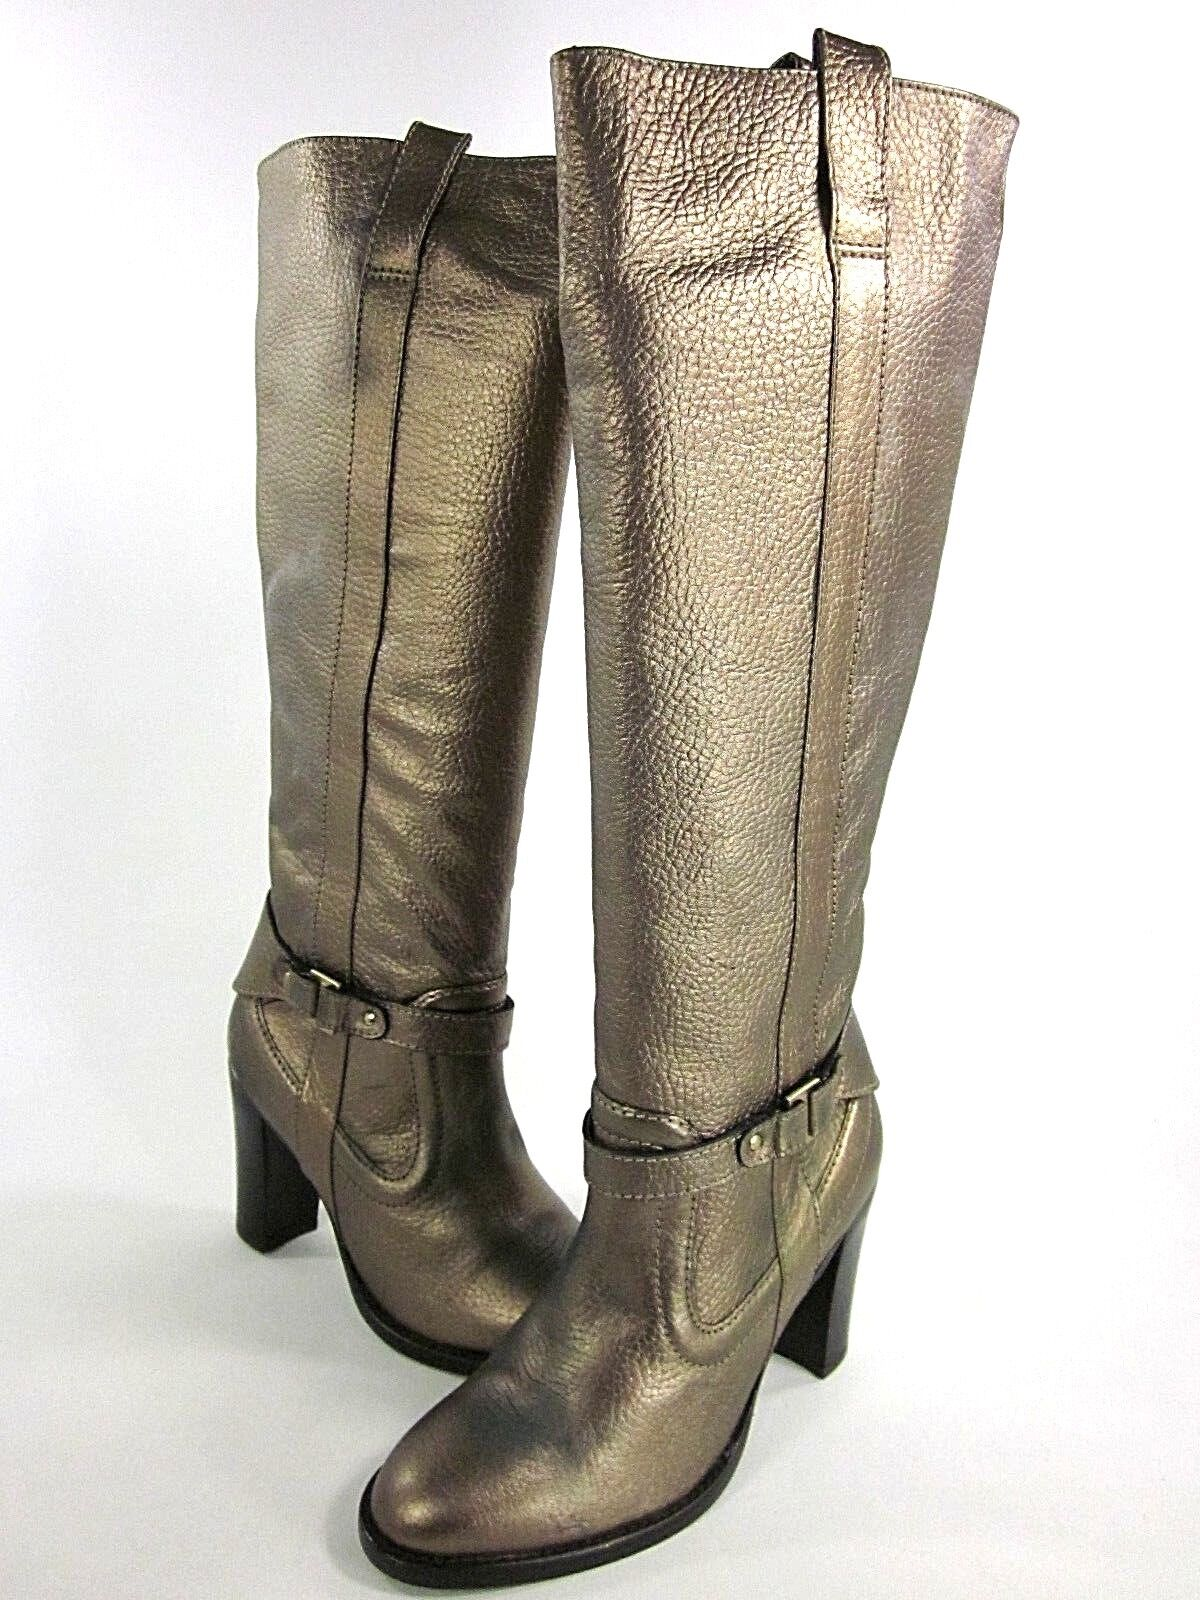 TED BAKER LONDON Donna DANA BOOT GOLD LEATHER US 8